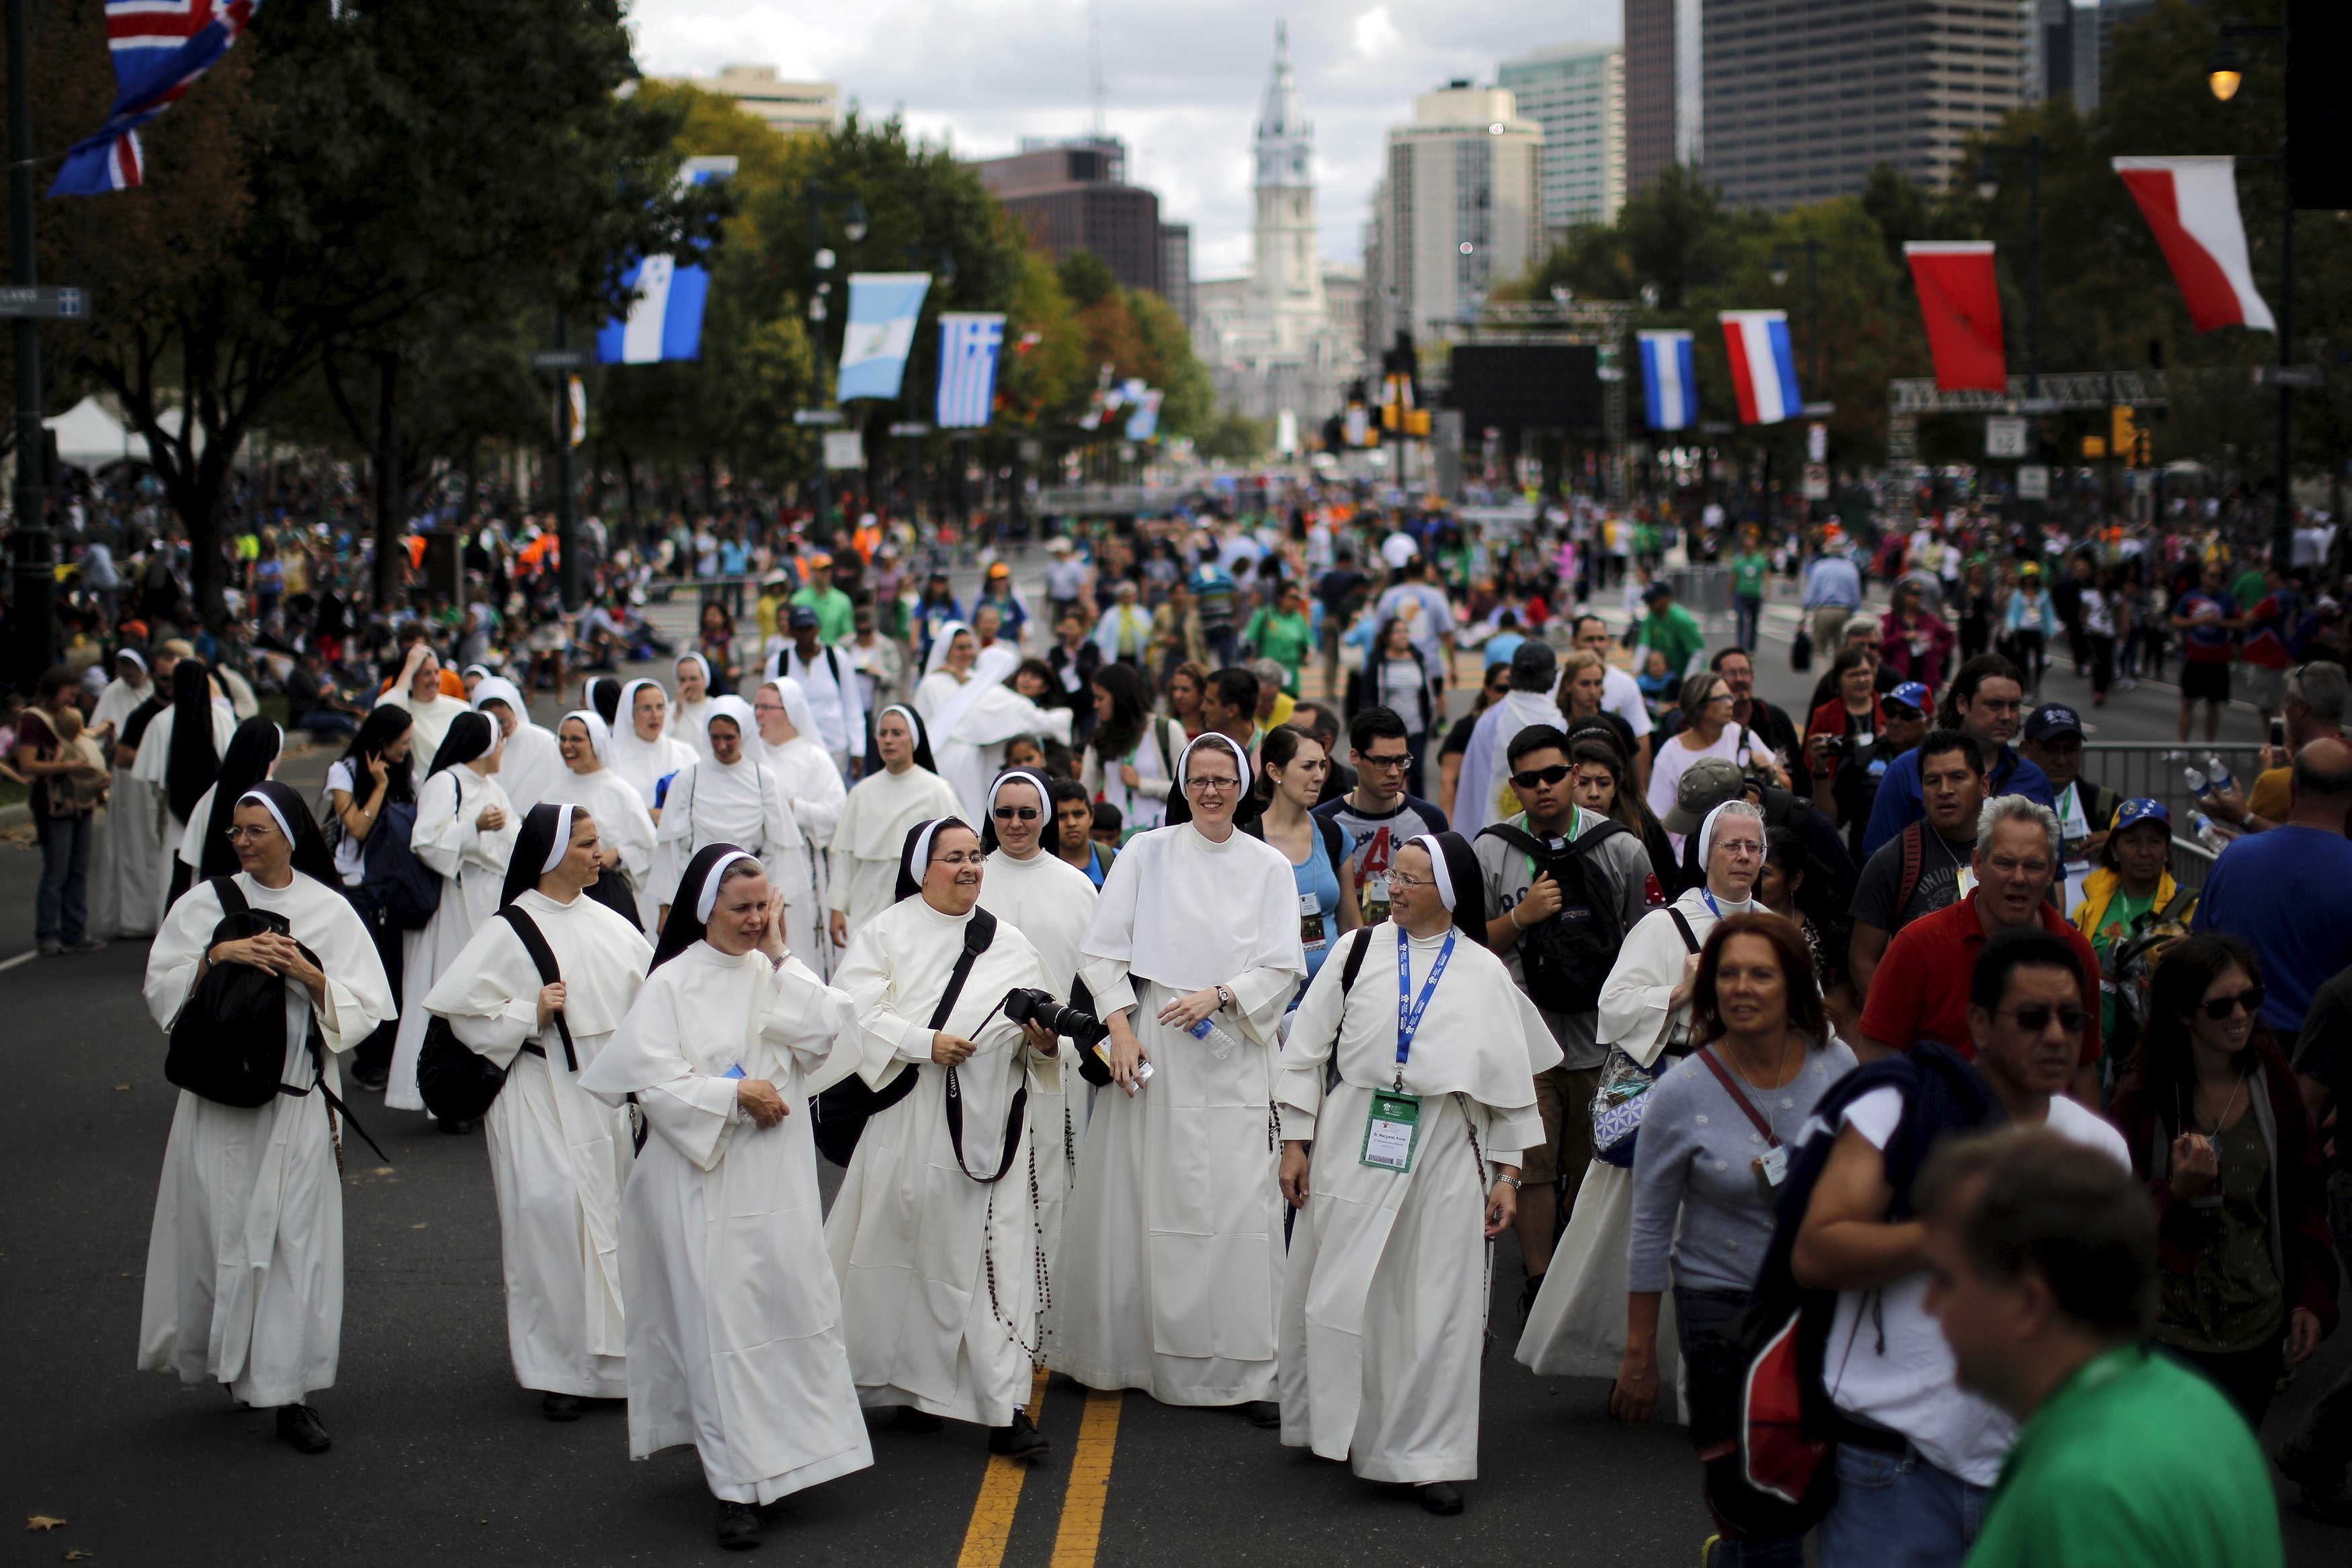 Nuns wait for Pope Francis' arrival at the Festival of Families rally along Benjamin Franklin Parkway in Philadelphia, on Sept. 26, 2015.